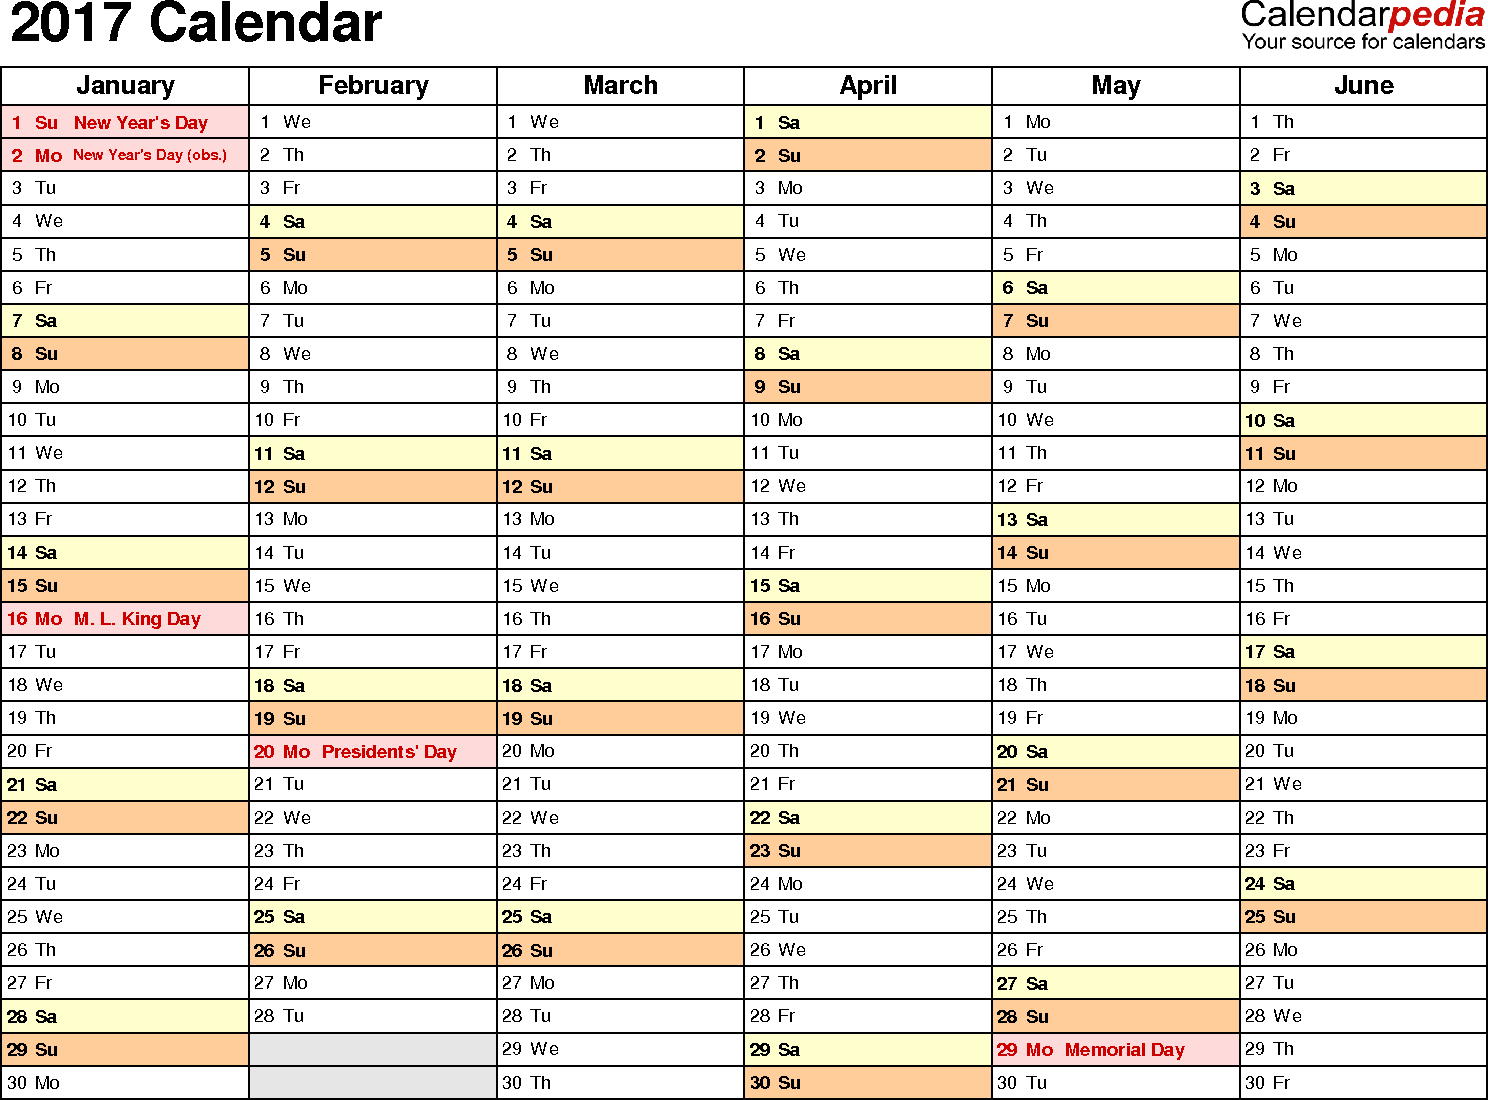 Ediblewildsus  Terrific  Calendar  Download  Free Printable Excel Templates Xls With Licious Template   Calendar For Excel Months Horizontally  Pages Landscape Orientation With Nice Sum Of Rows In Excel Also Excel Macro Msgbox In Addition Parsing Text In Excel And Excel Entertainment Group As Well As Excel Business Solutions Additionally Lock Selected Cells In Excel From Calendarpediacom With Ediblewildsus  Licious  Calendar  Download  Free Printable Excel Templates Xls With Nice Template   Calendar For Excel Months Horizontally  Pages Landscape Orientation And Terrific Sum Of Rows In Excel Also Excel Macro Msgbox In Addition Parsing Text In Excel From Calendarpediacom